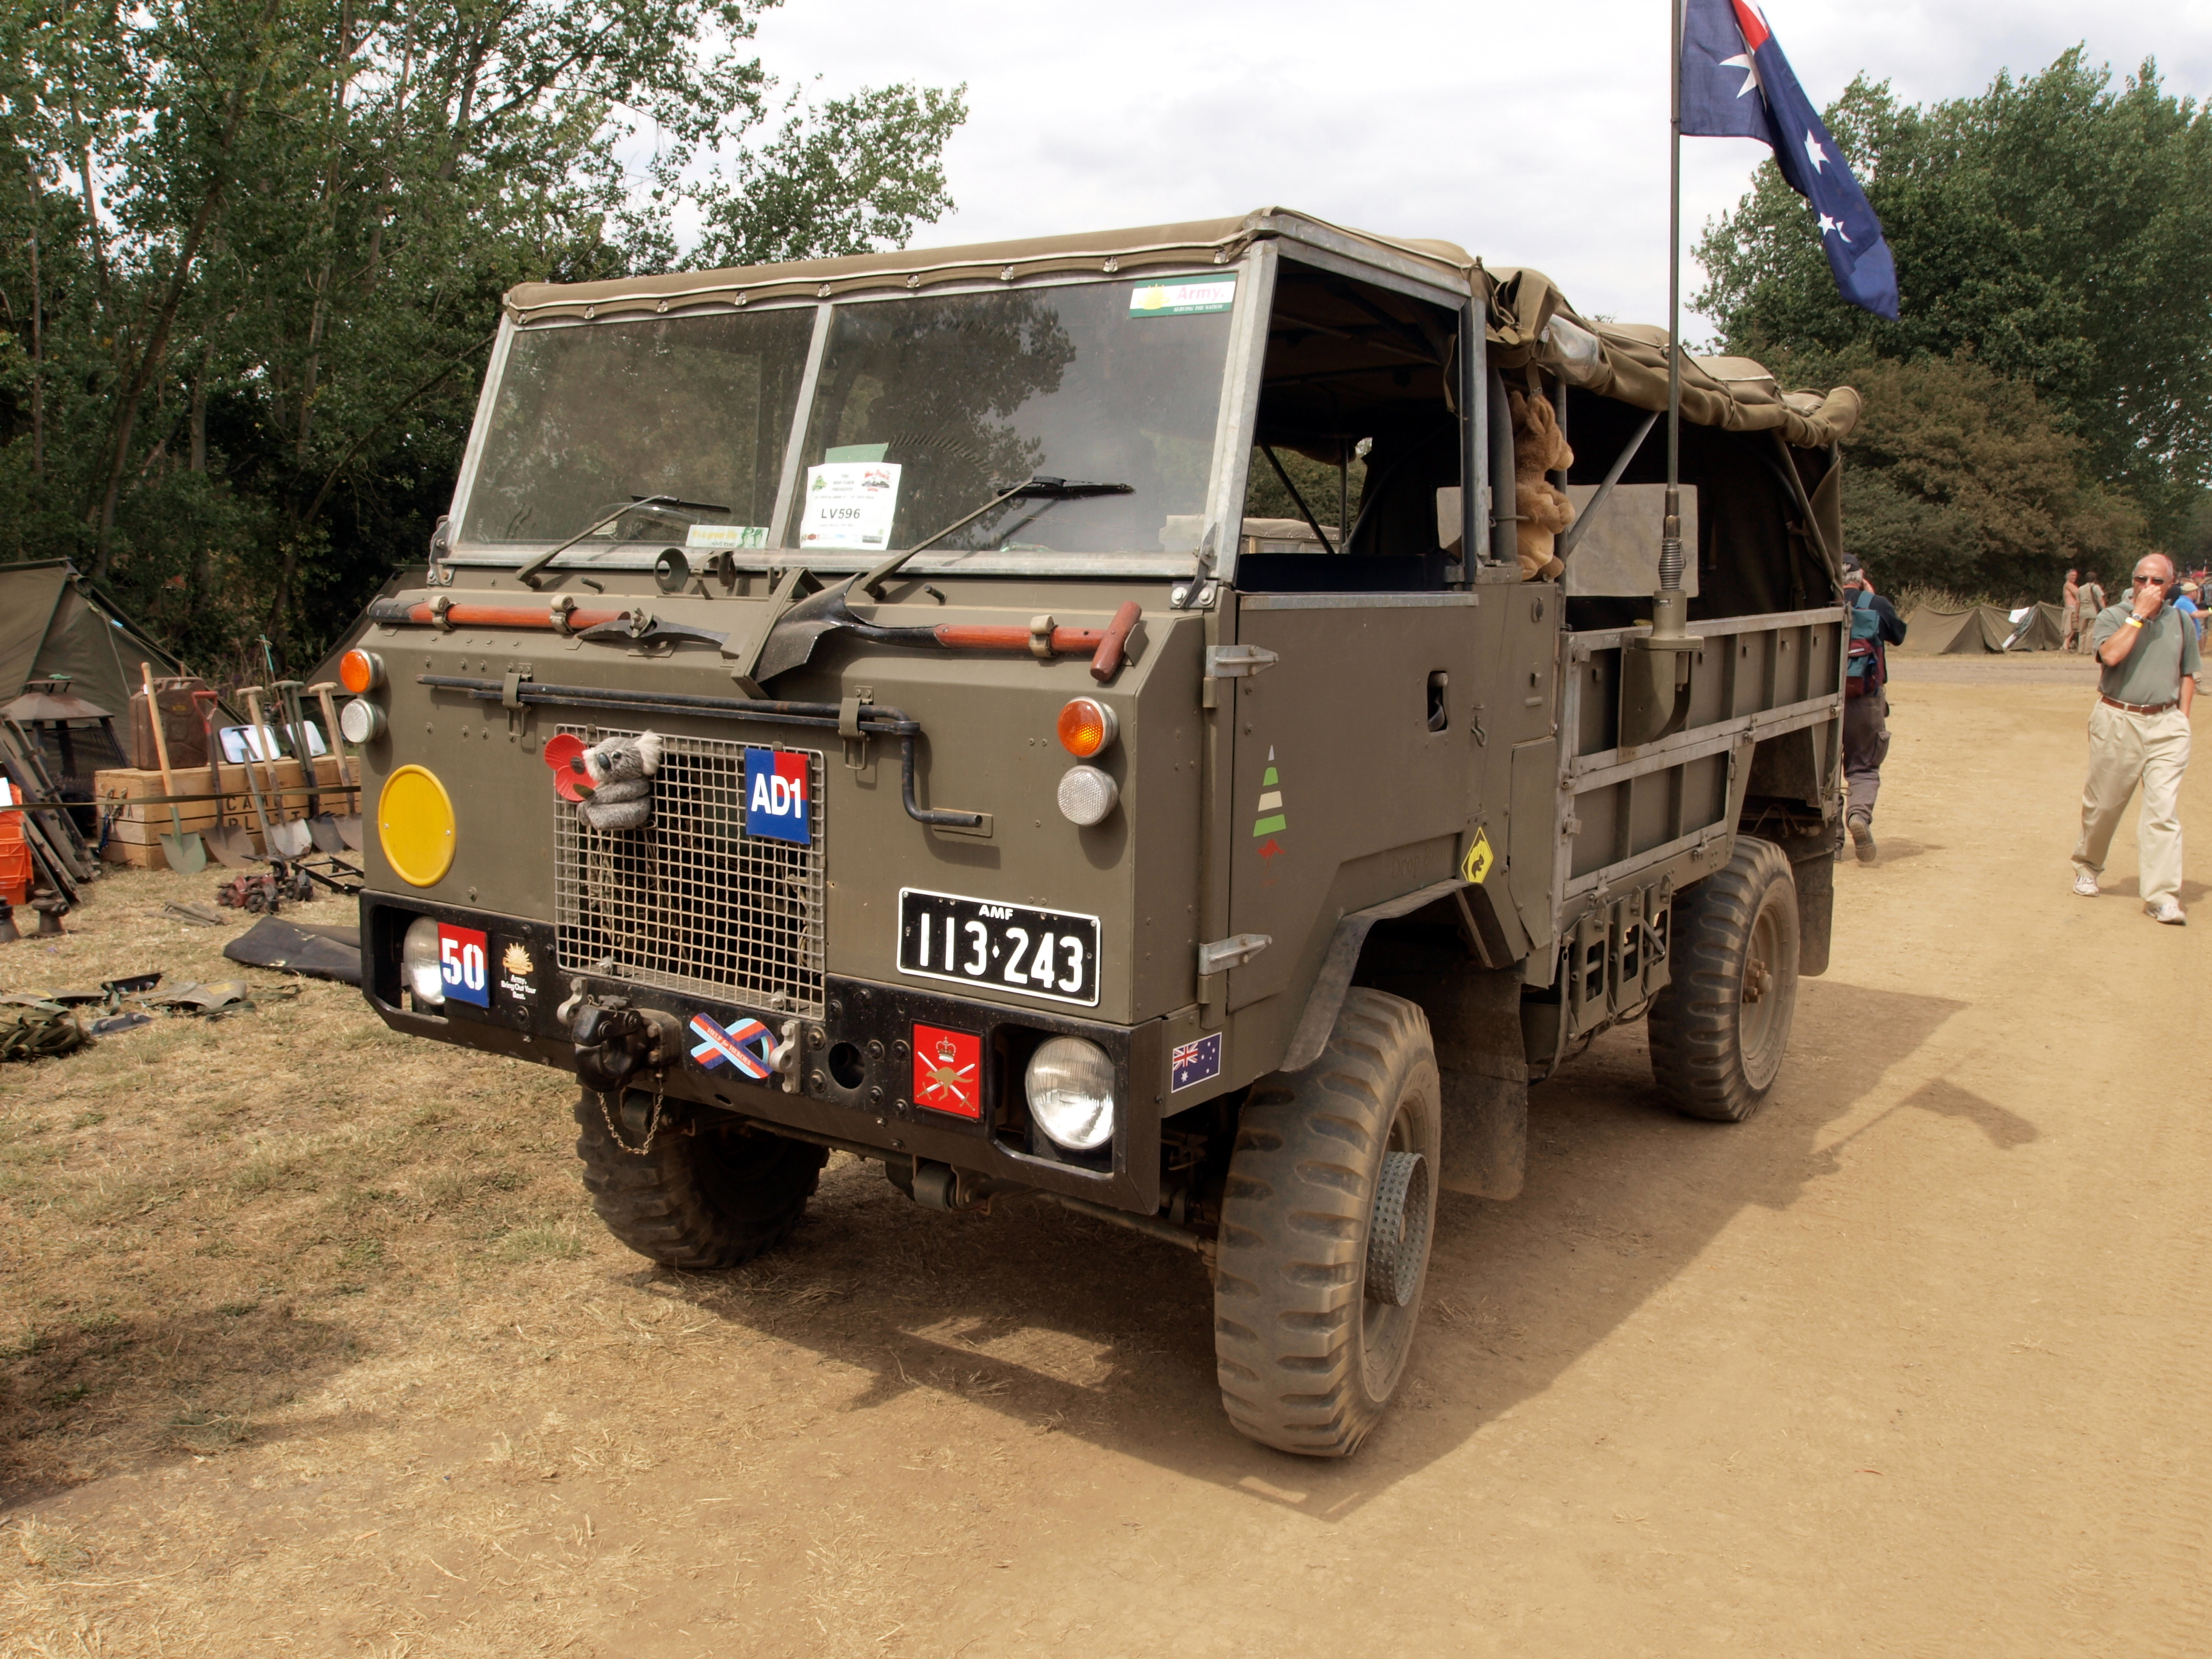 File:Land Rover 101 Forward Control pic12.JPG - Wikimedia Commons